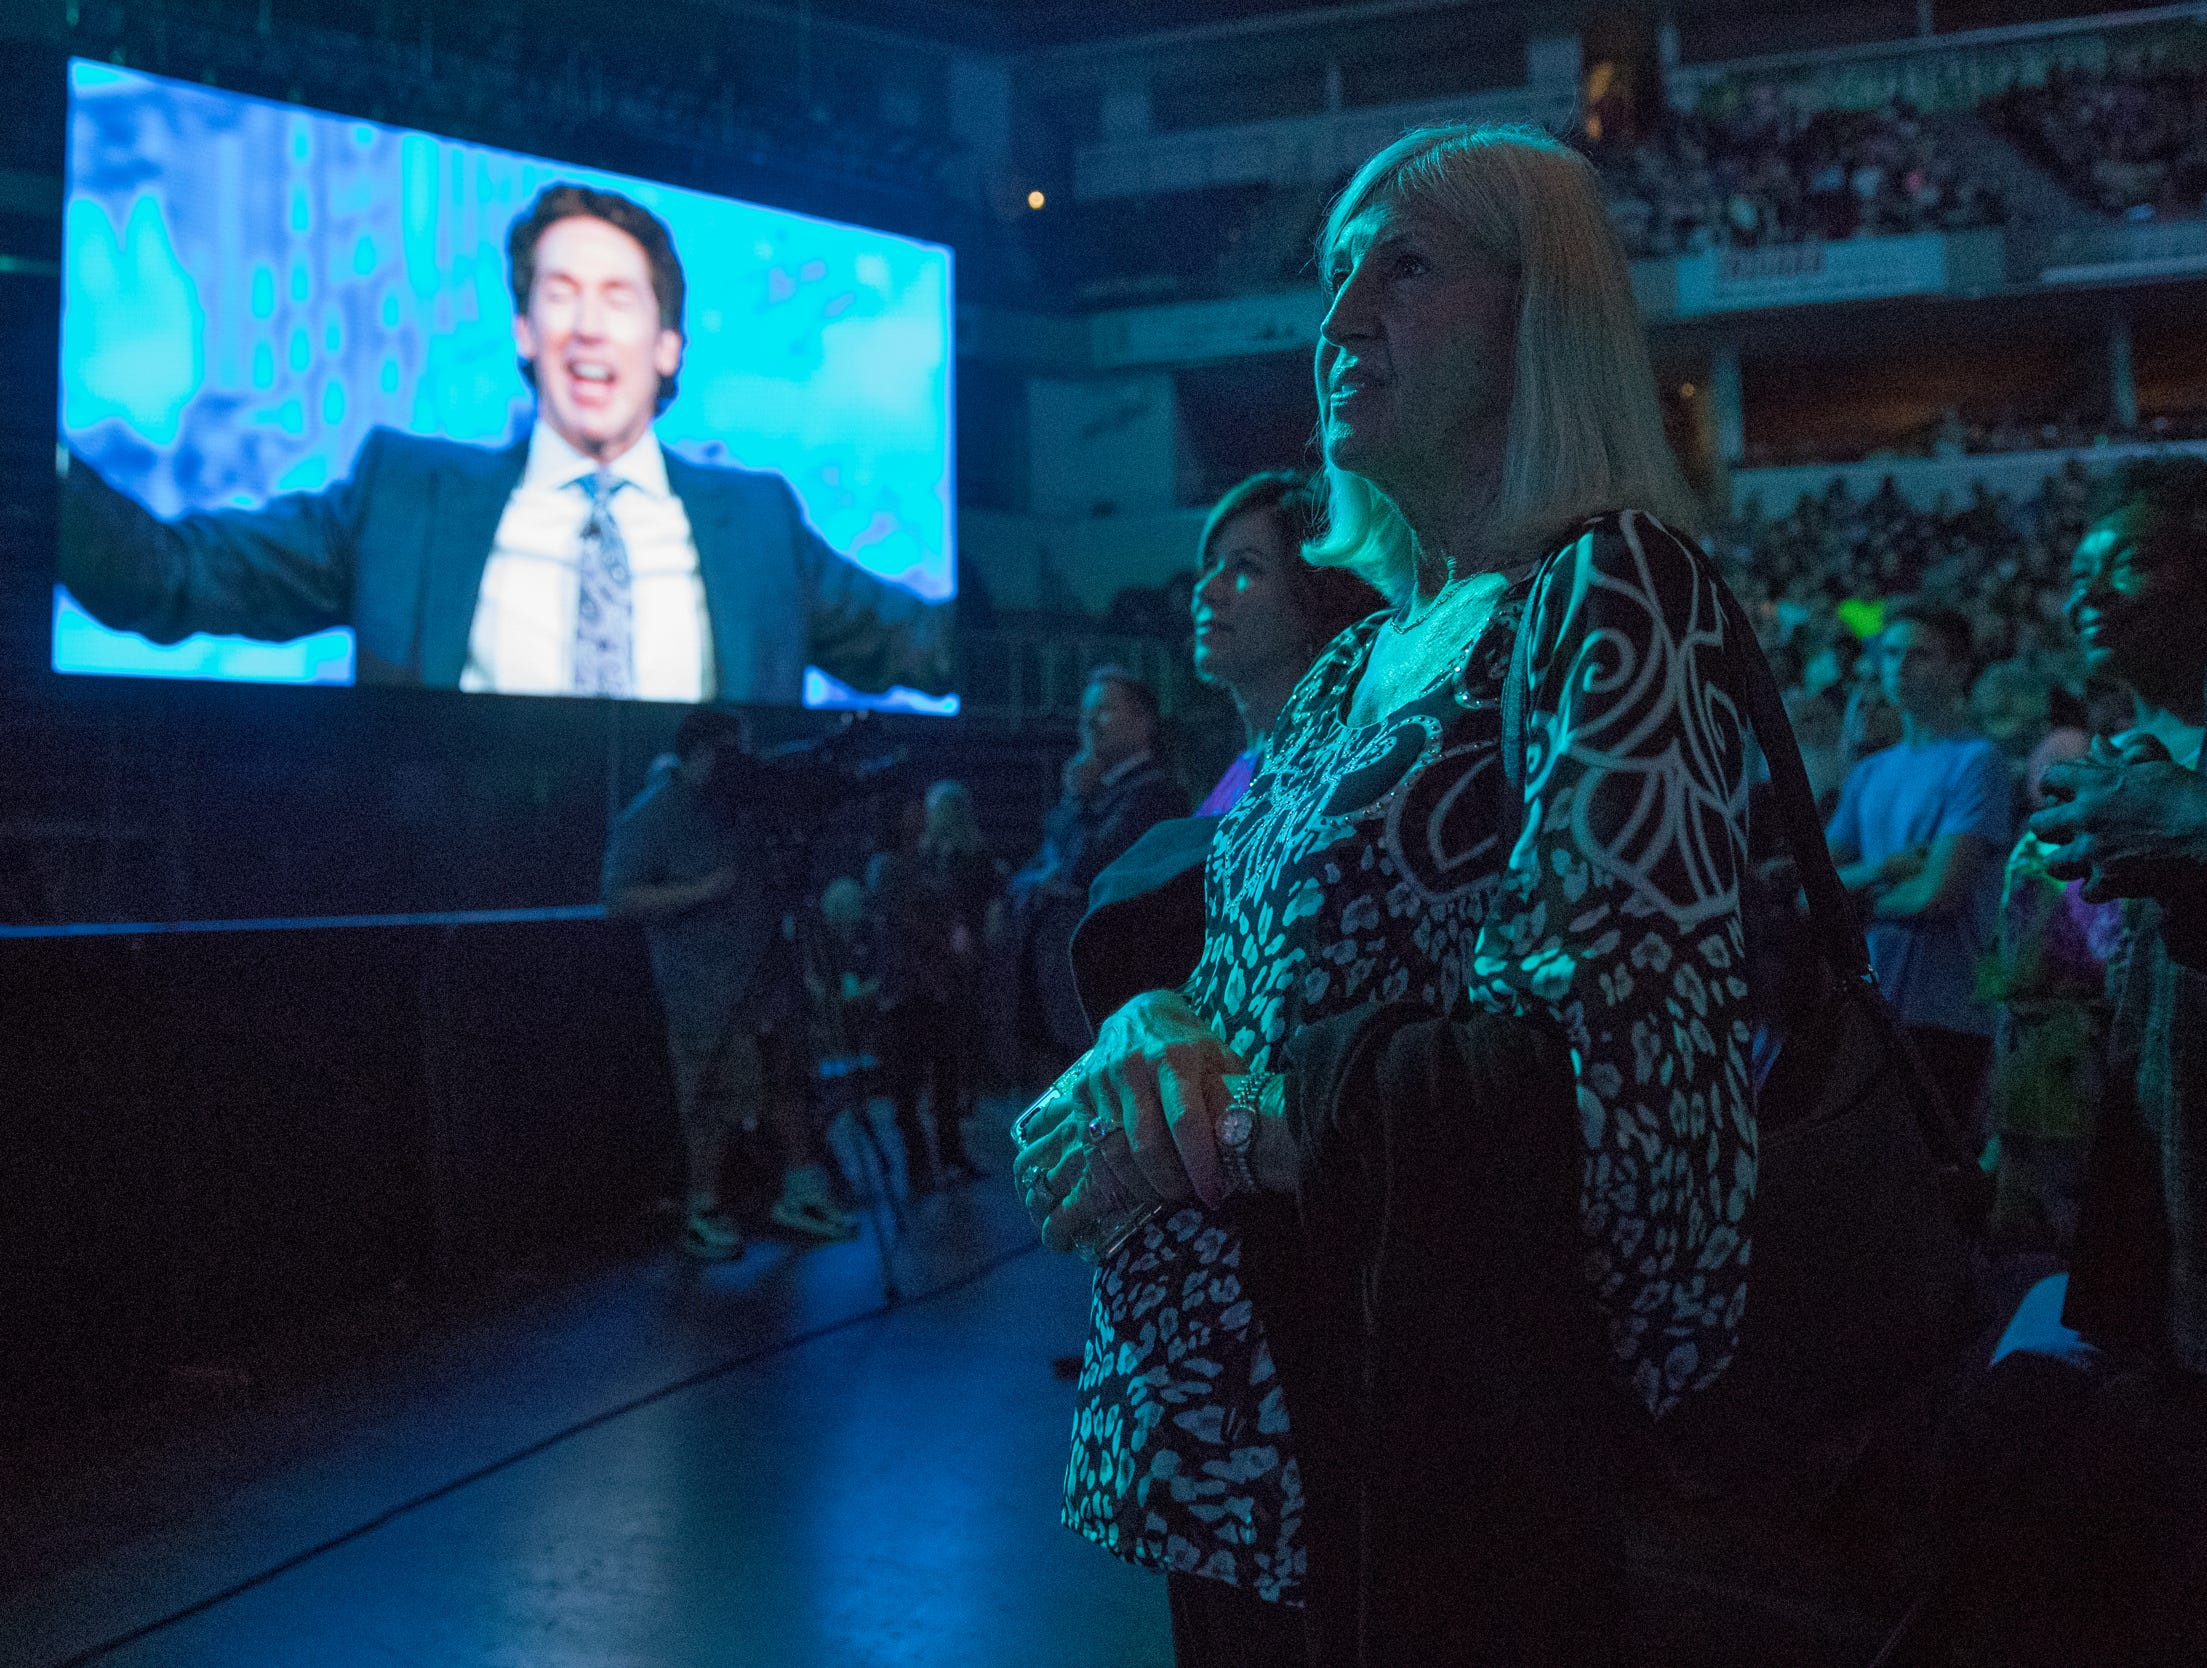 Fans watch as Joel Osteen speaks at Bankers Life Fieldhouse, Indianapolis, Friday, Aug. 10, 2018. The event, dubbed Night of Hope with Joel and Victoria, drew about 8,000 people to the arena for the event with the Houston-based televangelist.